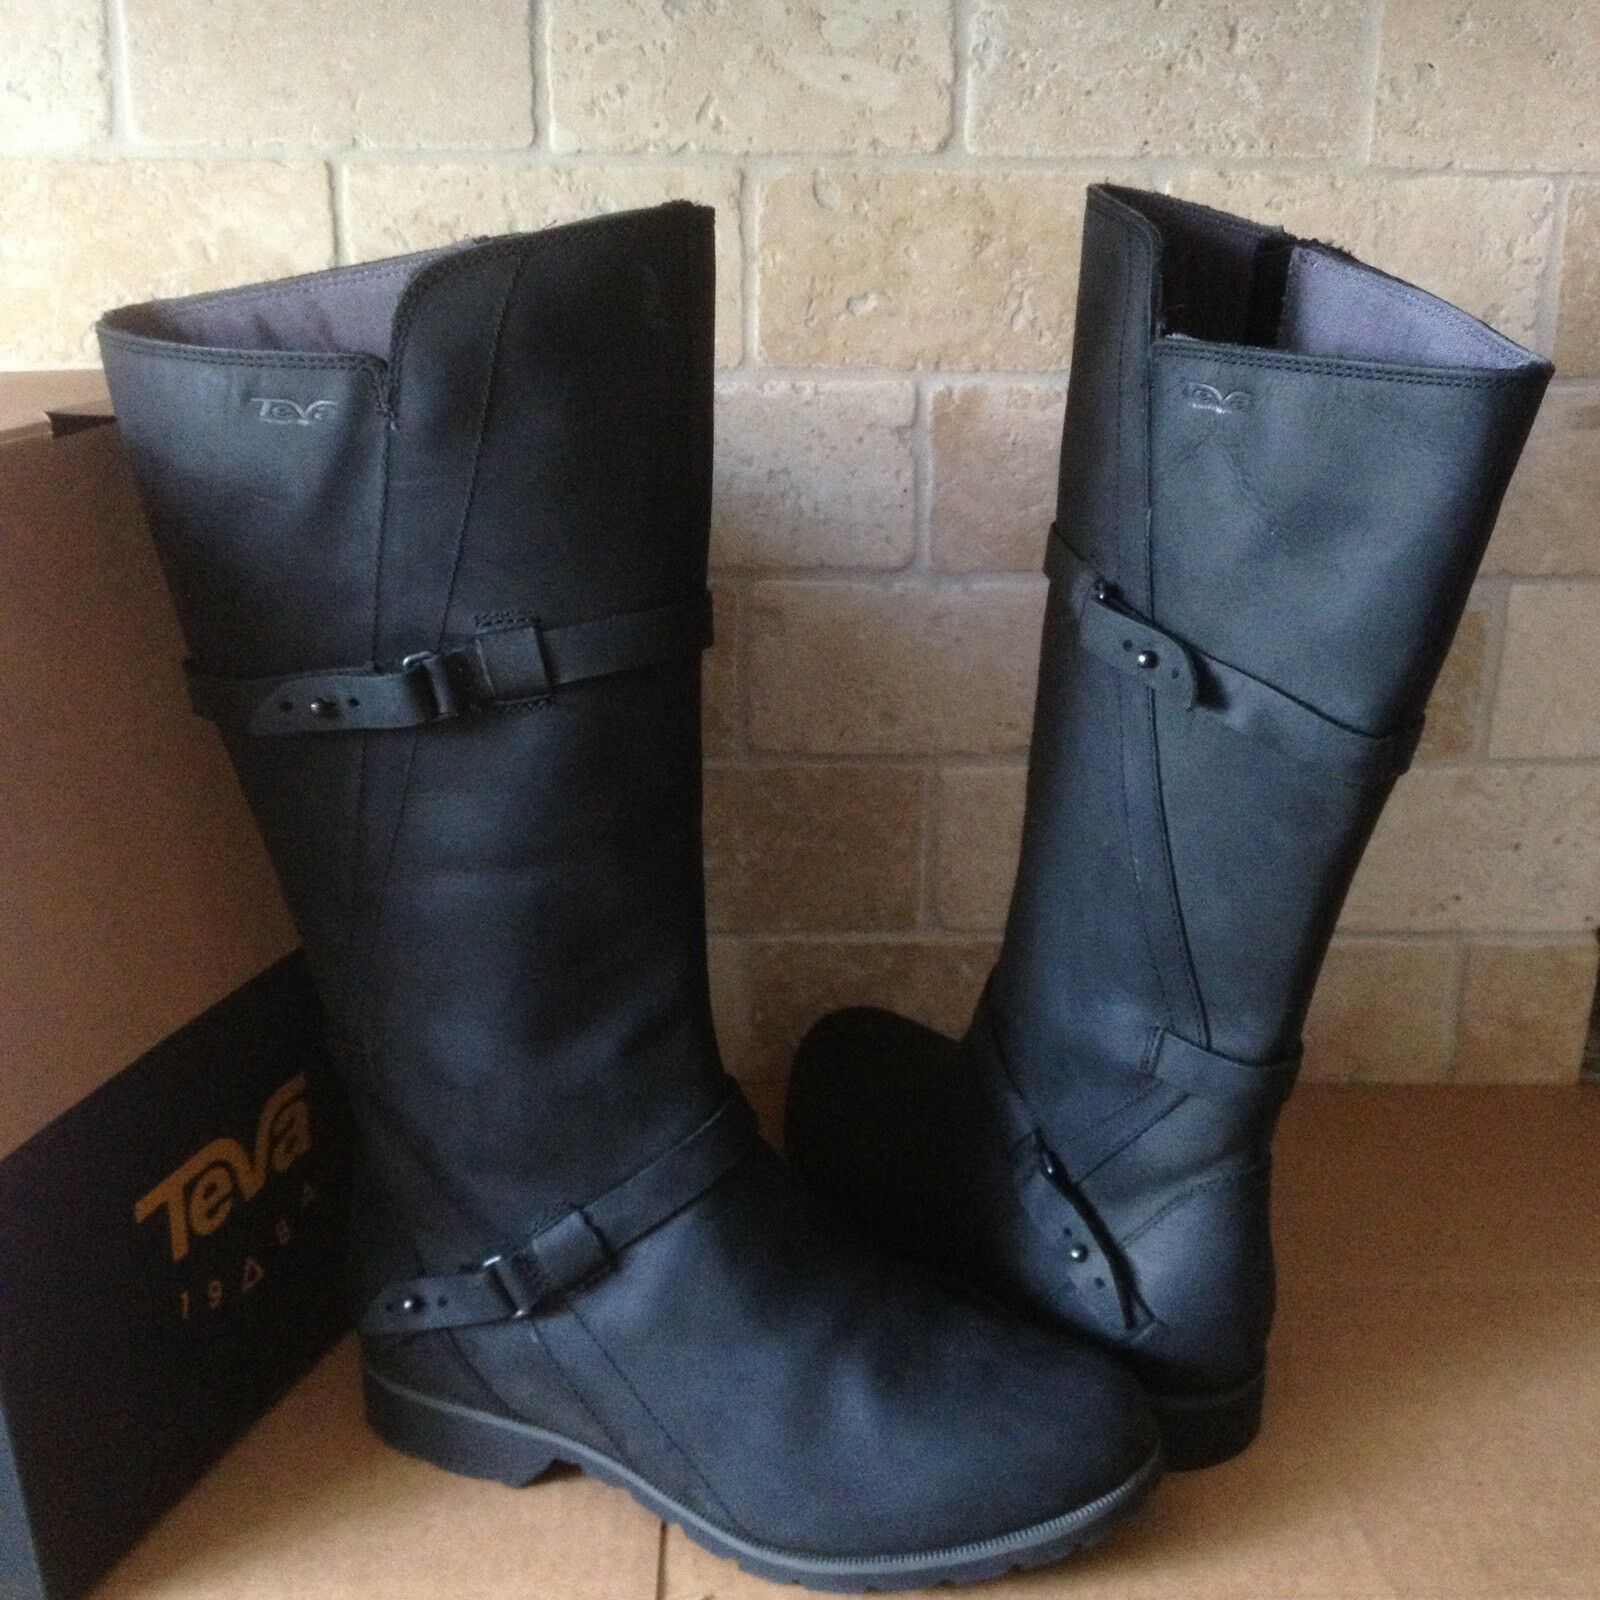 TEVA DE LA VINA BLACK WATERPROOF US LEATHER TALL Stiefel SIZE US WATERPROOF 5.5 Damenschuhe 43d928